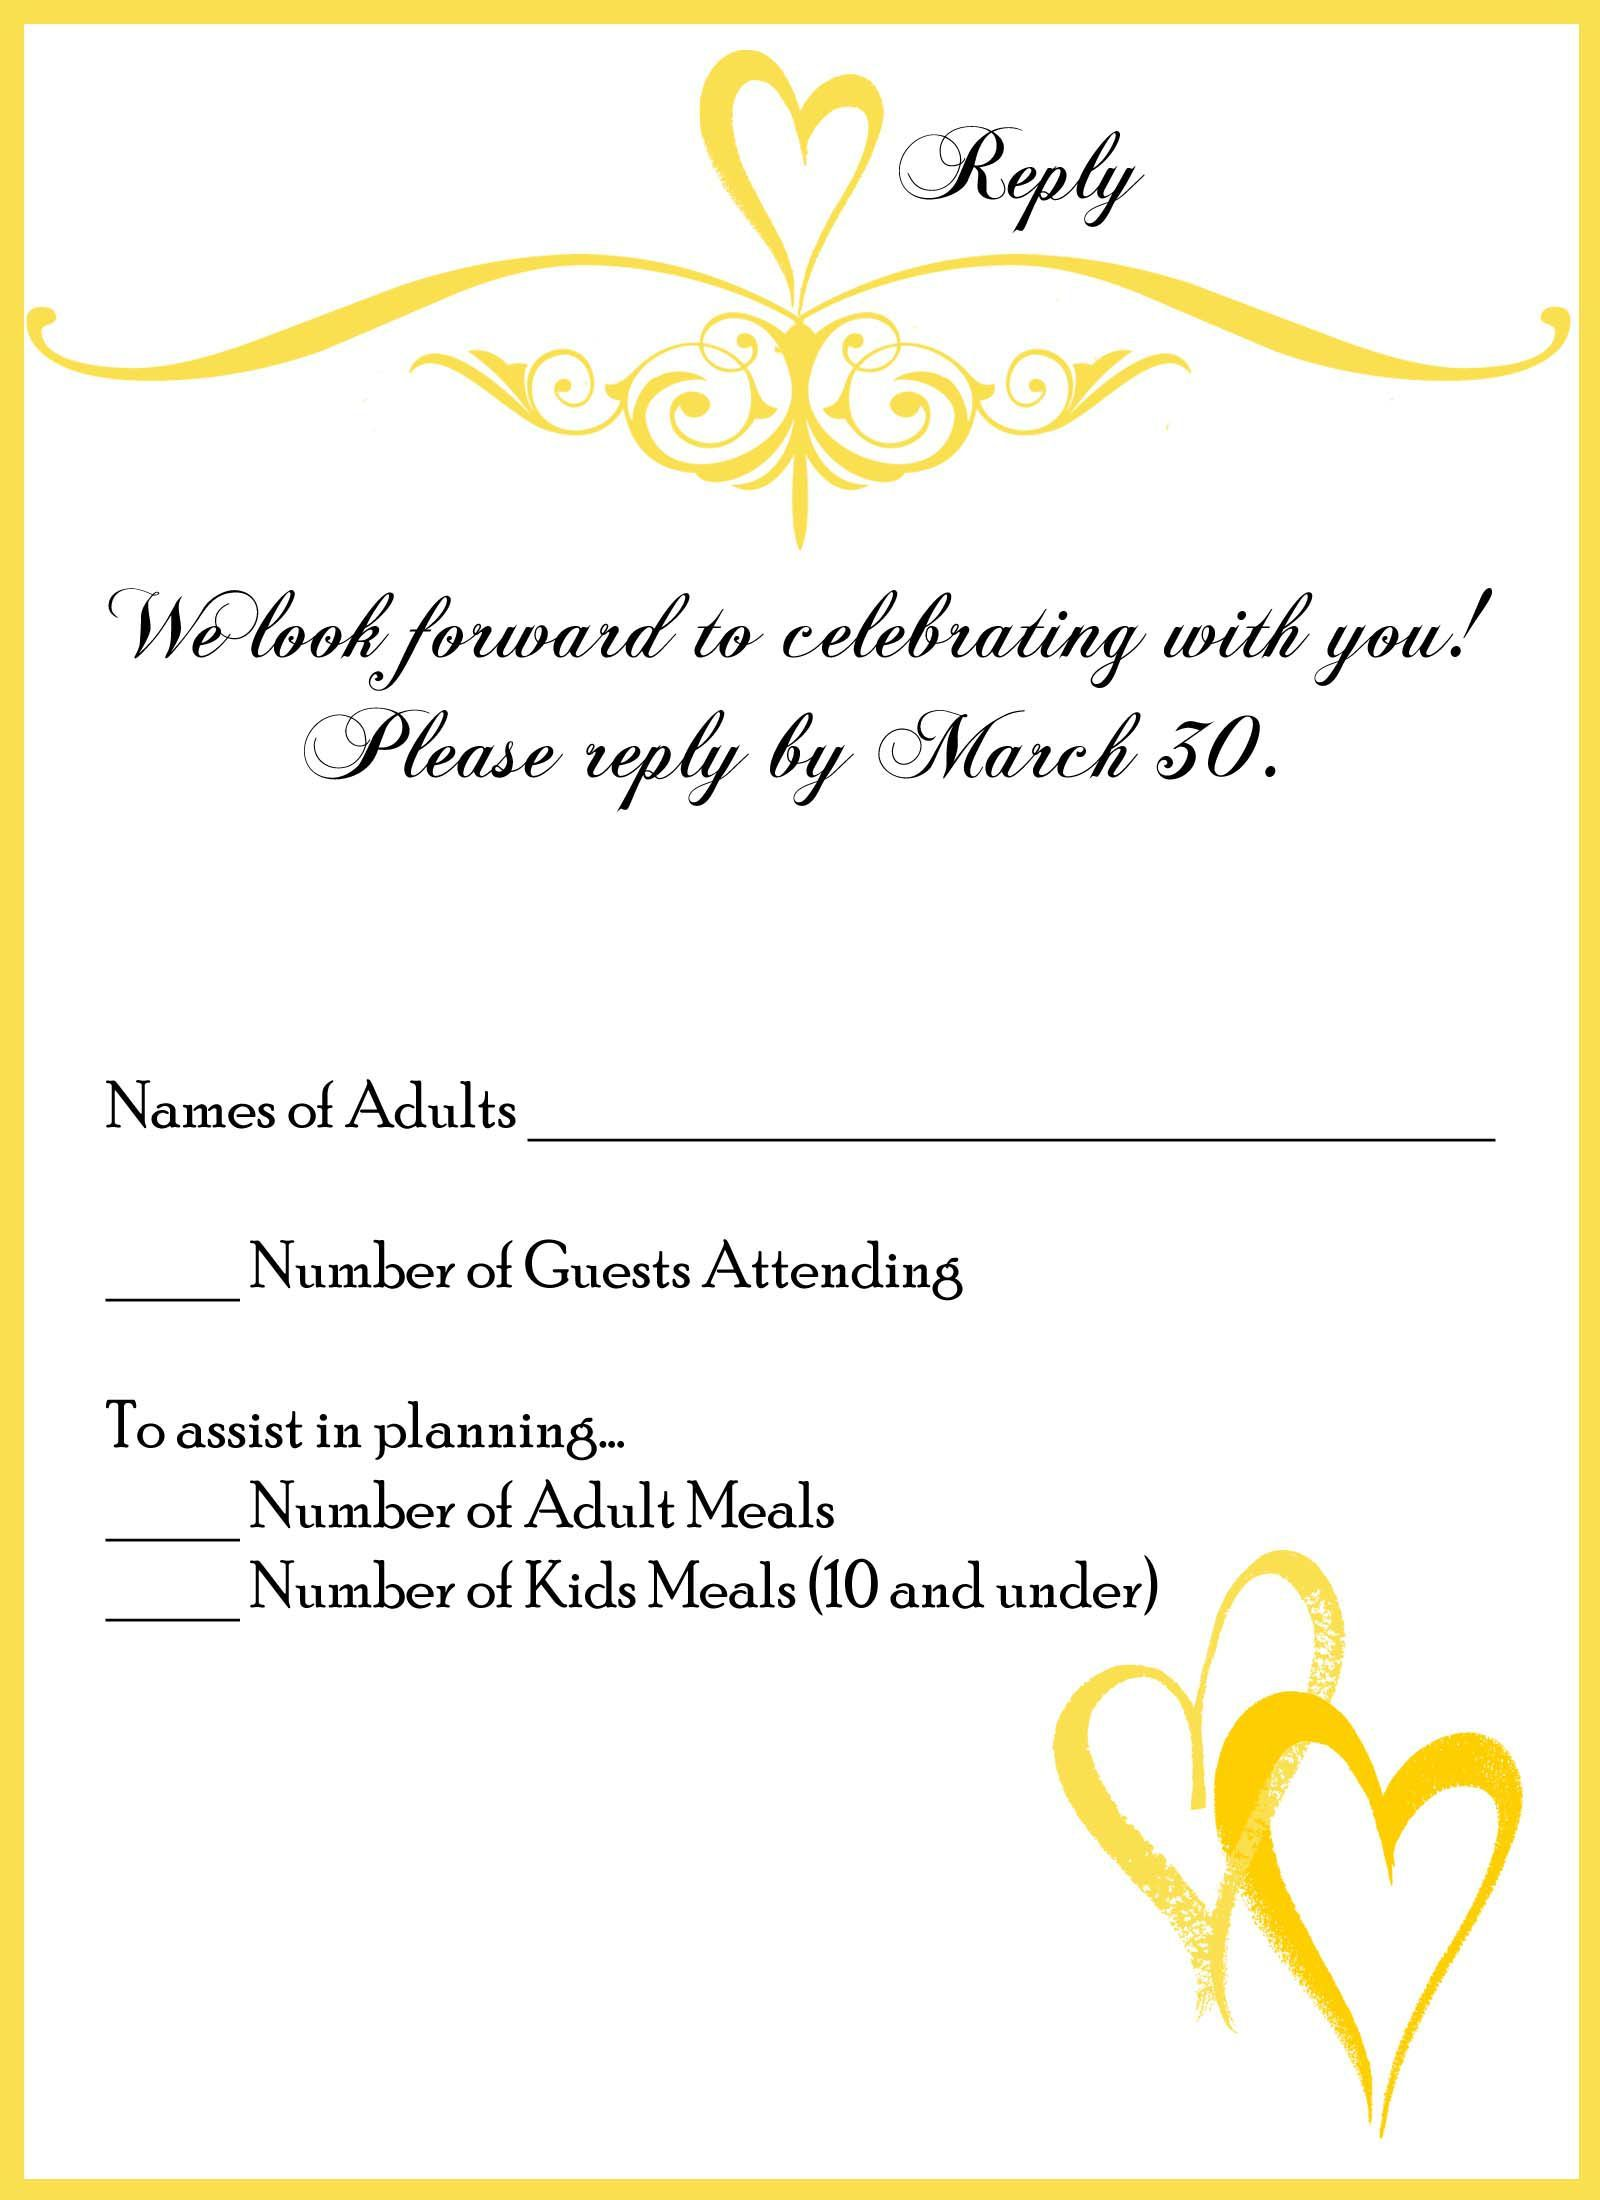 wedding response card wording allergies | wedding invitations ...